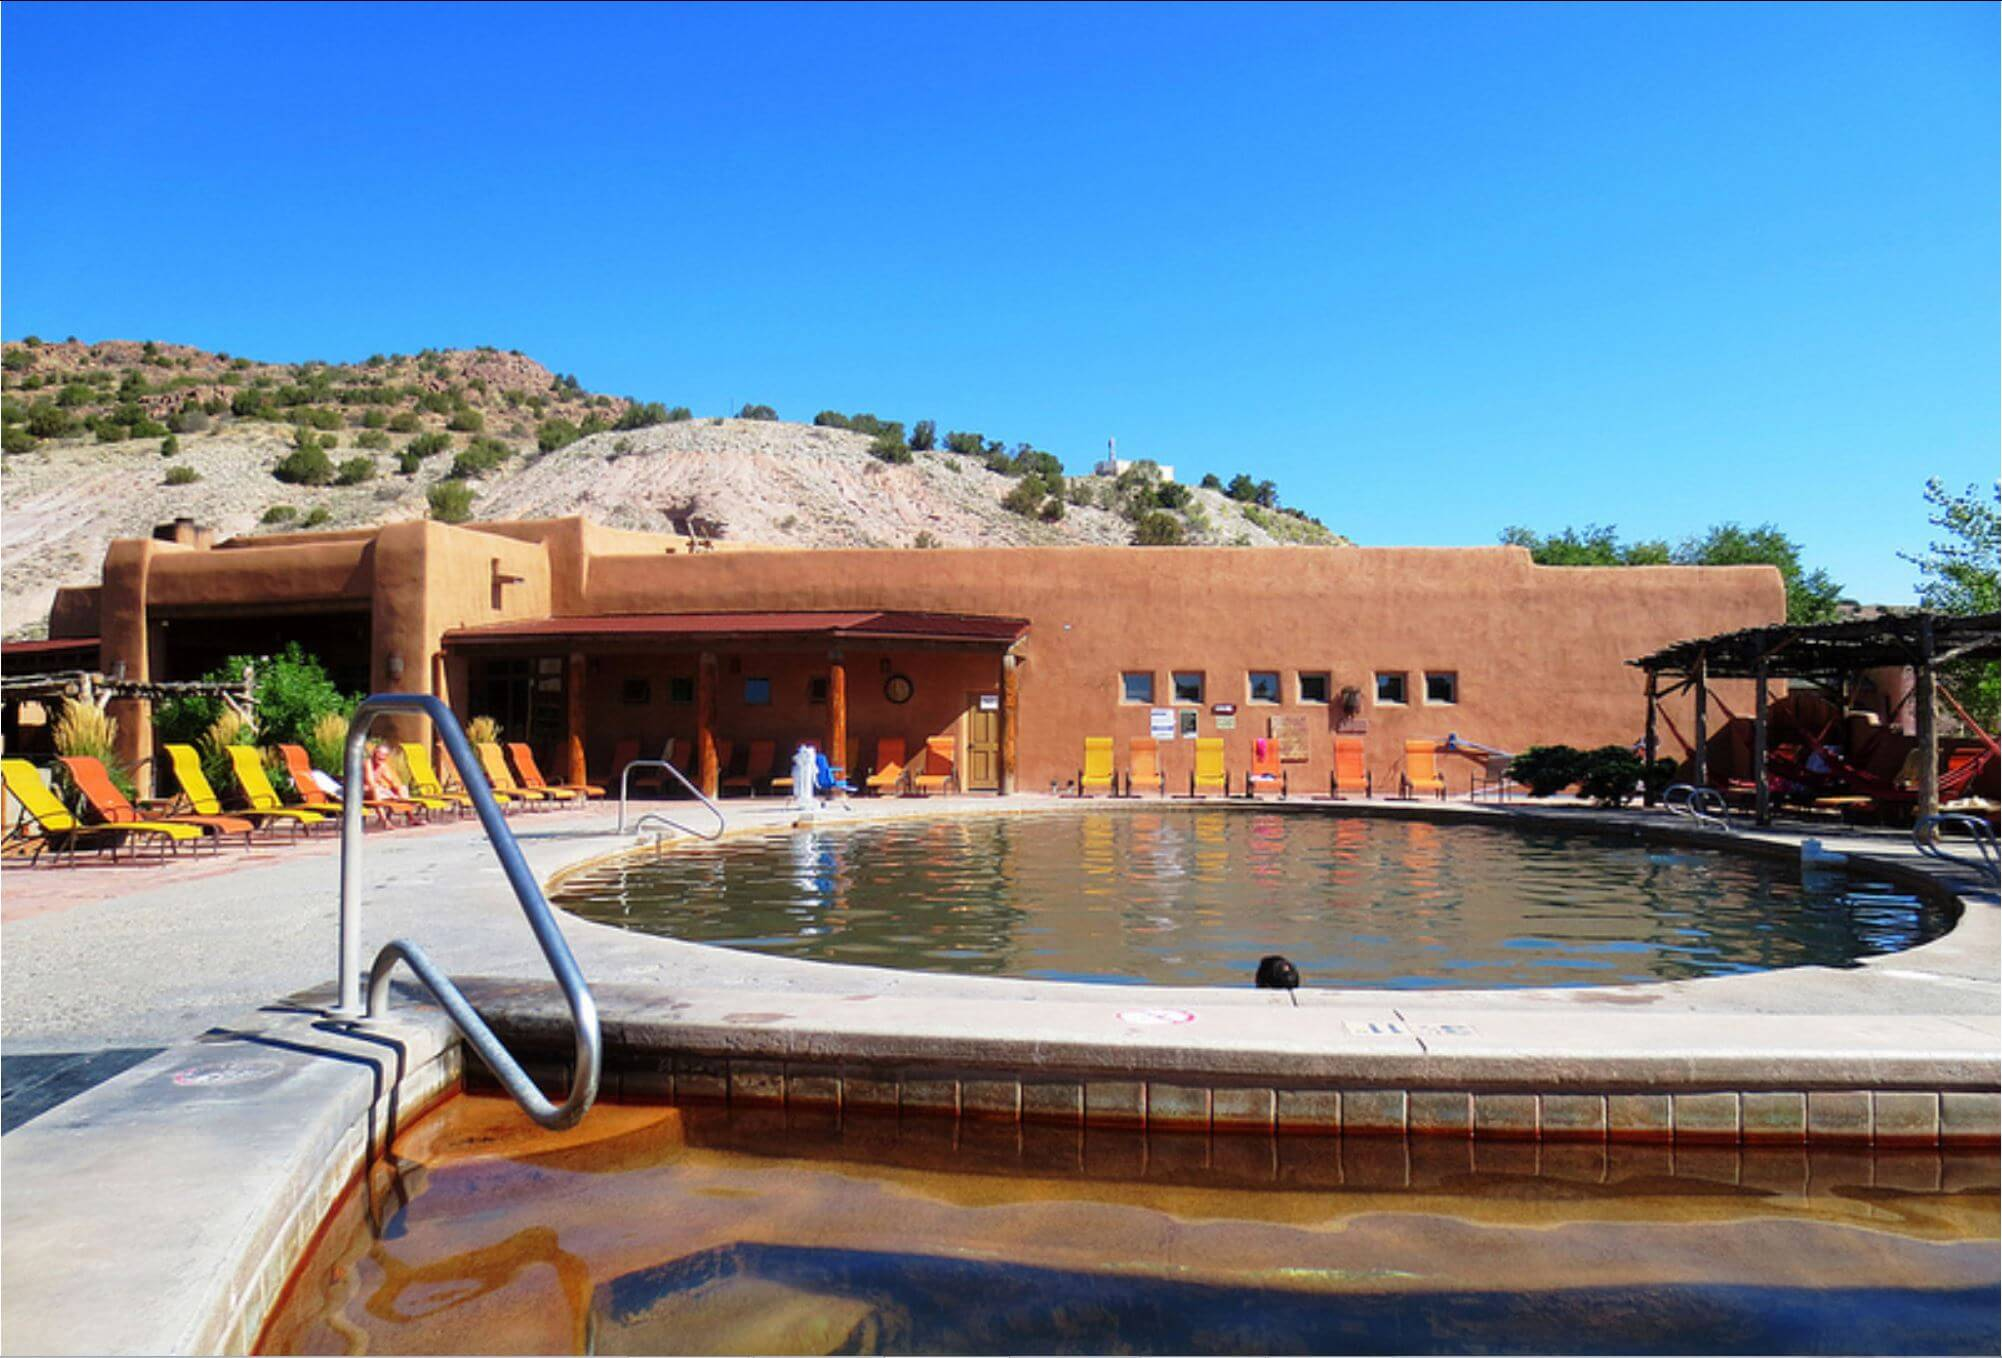 Ojo Caliente one of the best hot spring in the US